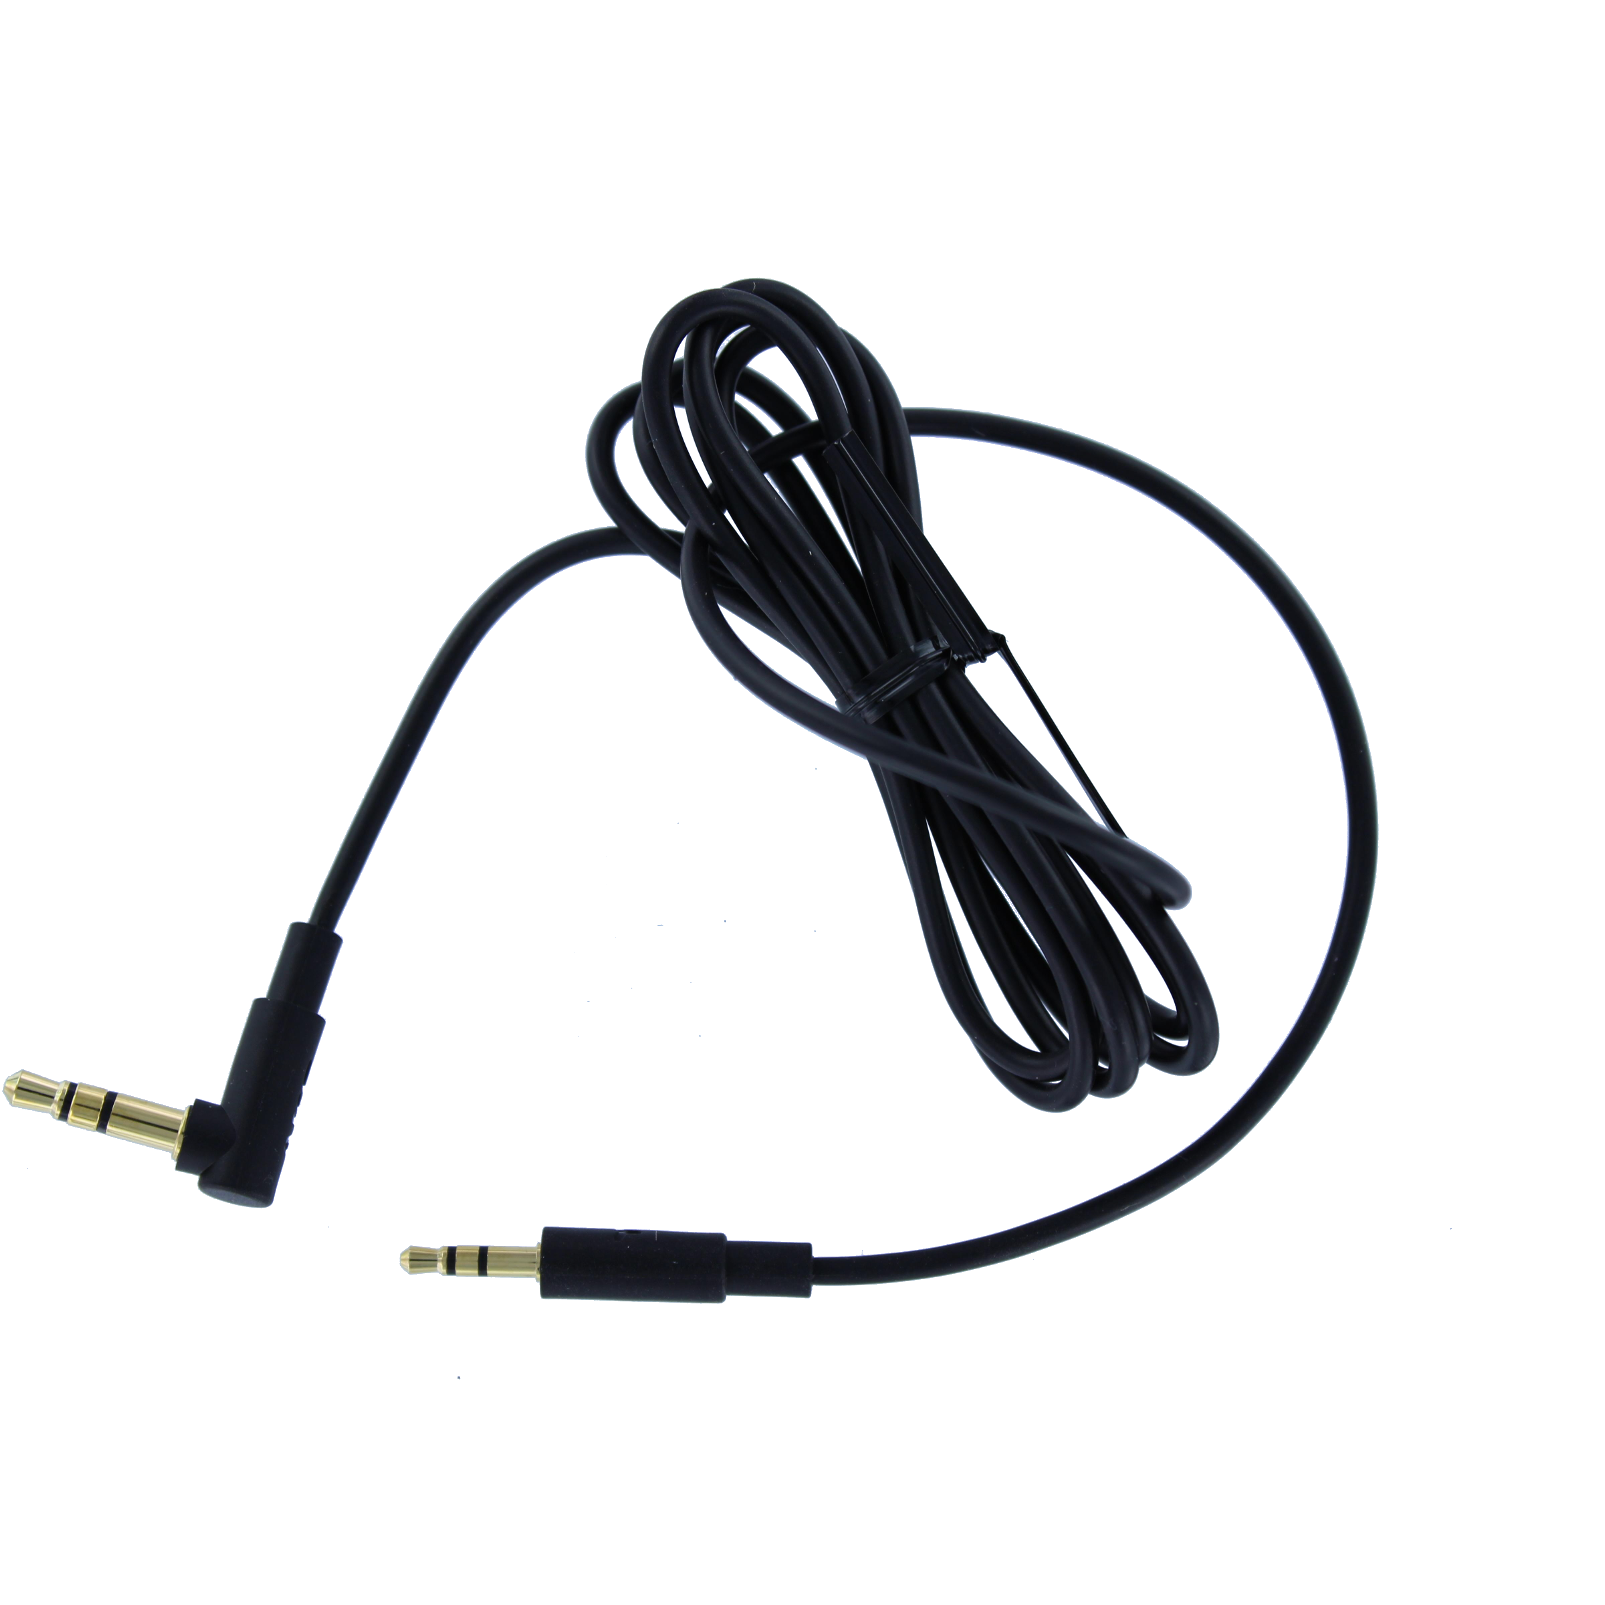 Audio cable without remote, AKG Y50